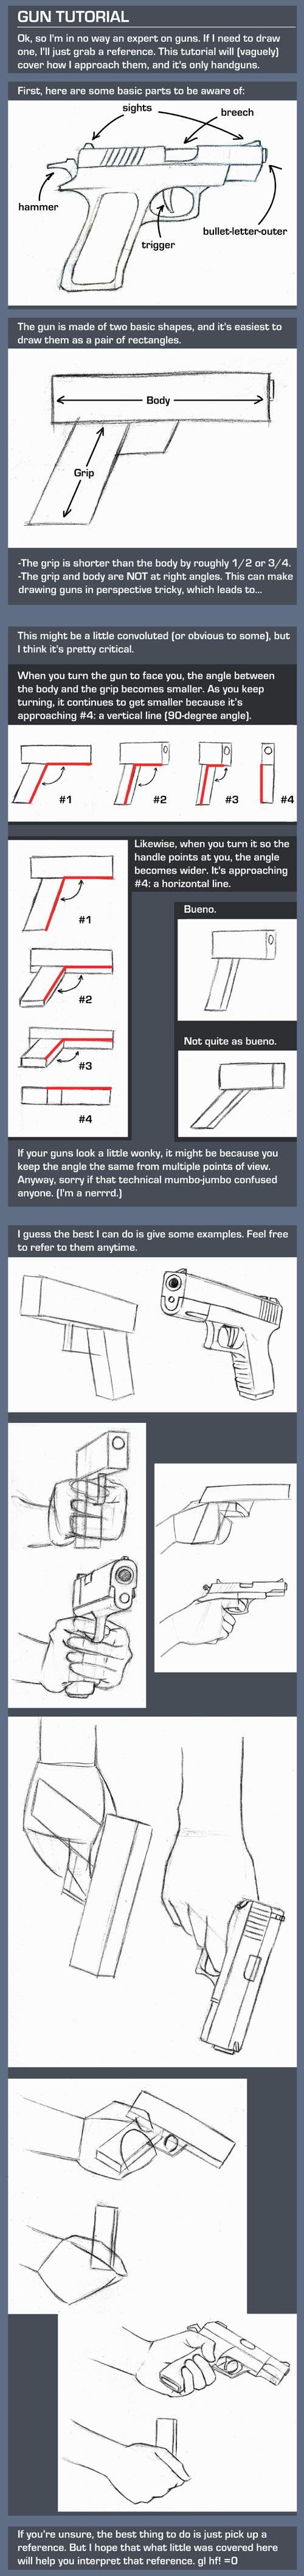 Gun 'Tutorial' by TheAmoebic